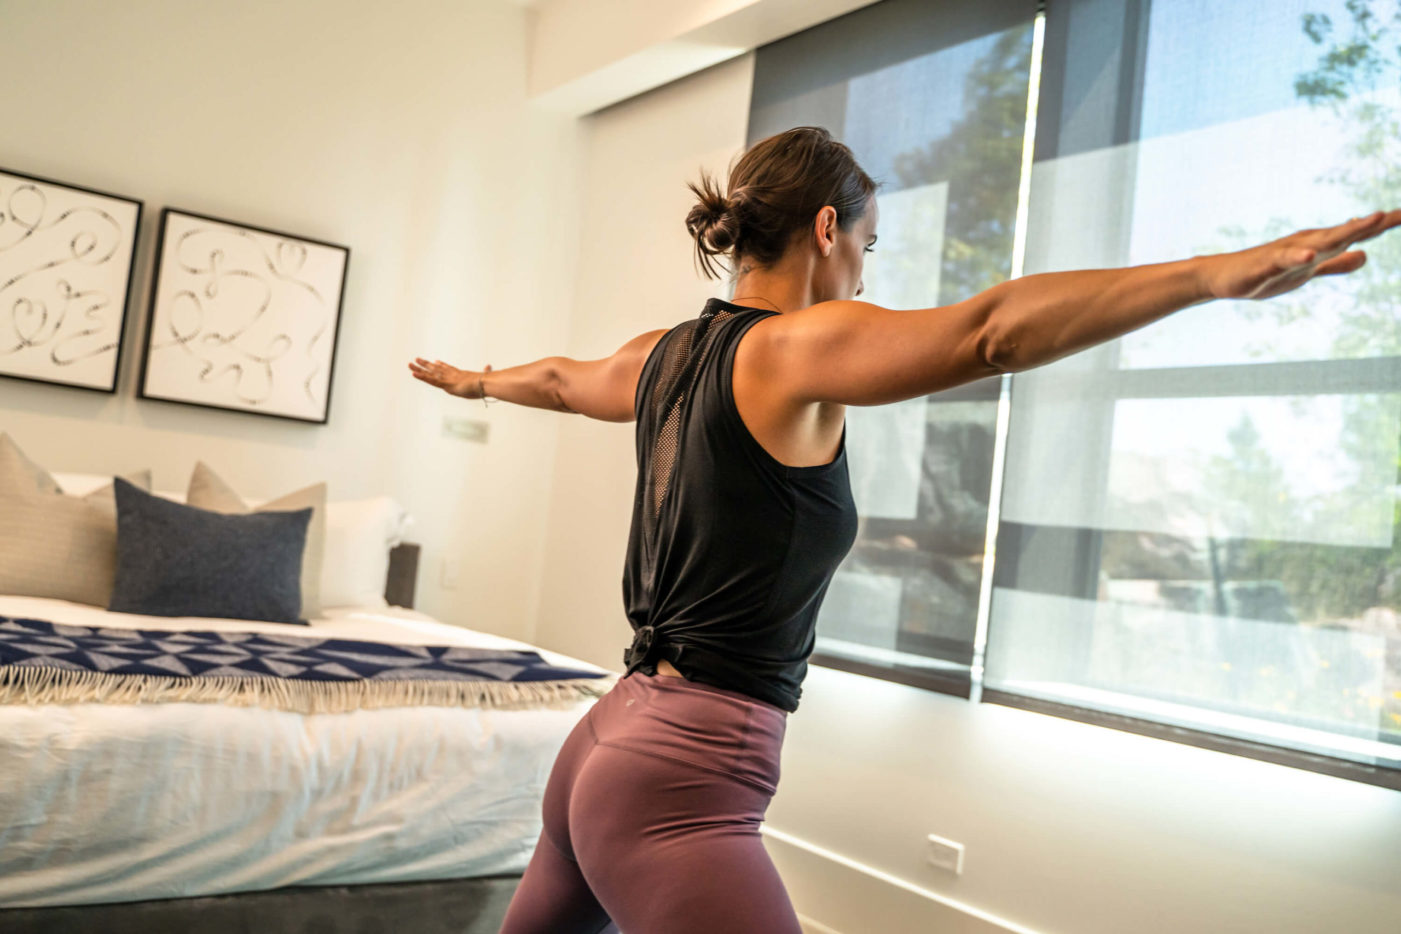 6 Fitness Goals You Can Accomplish With Yoga Workouts at Home